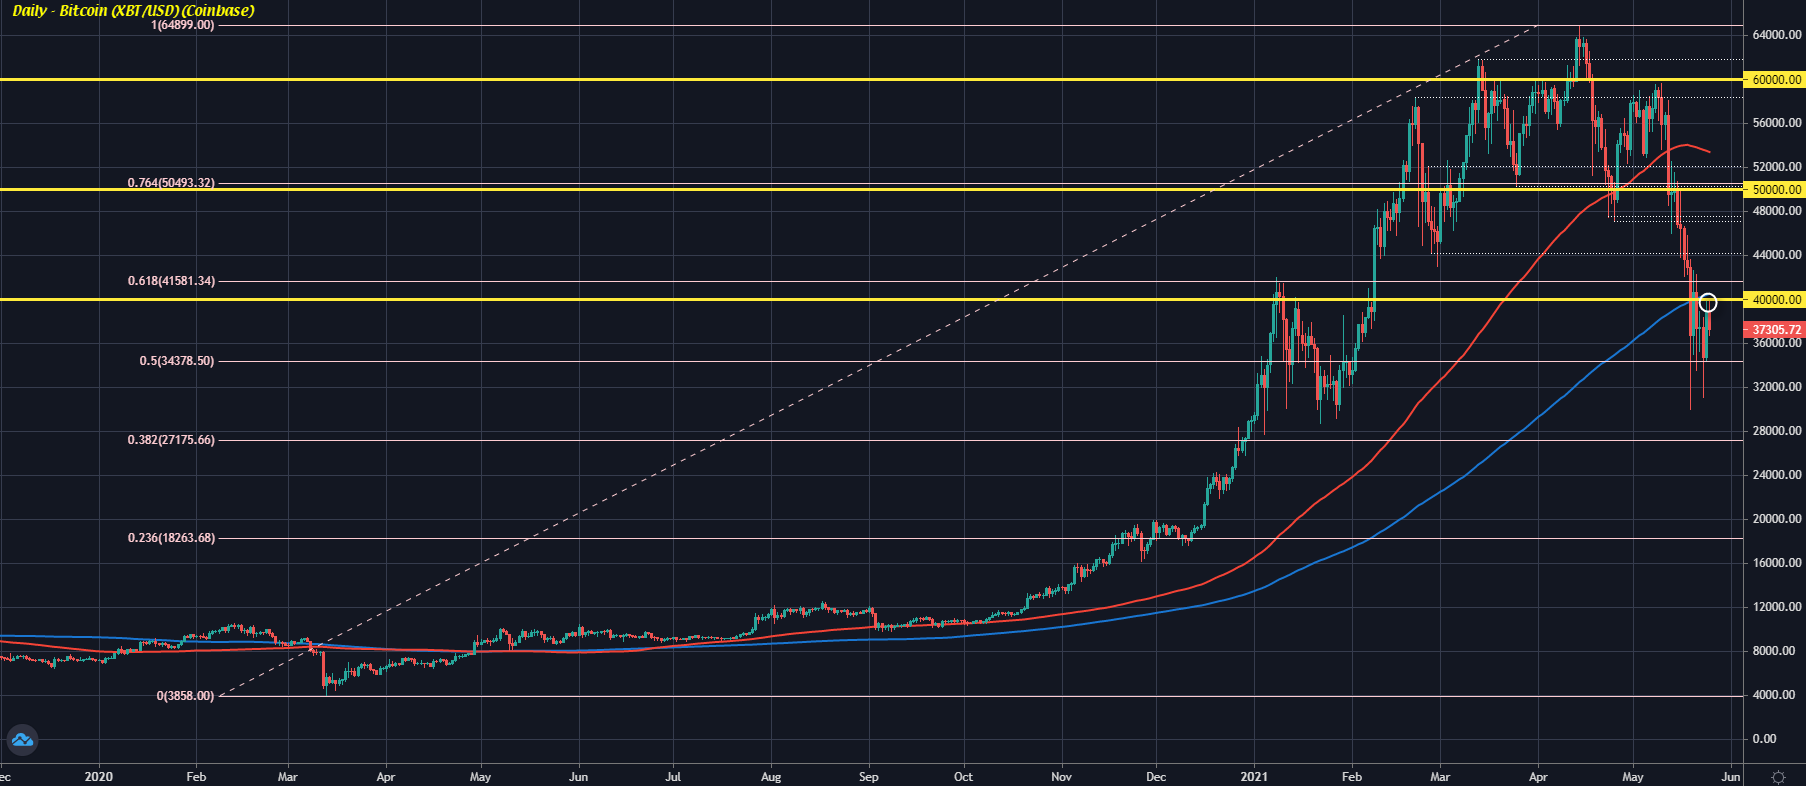 Bitcoin struggles to gather momentum to move back above $40,000, sits lower on the day